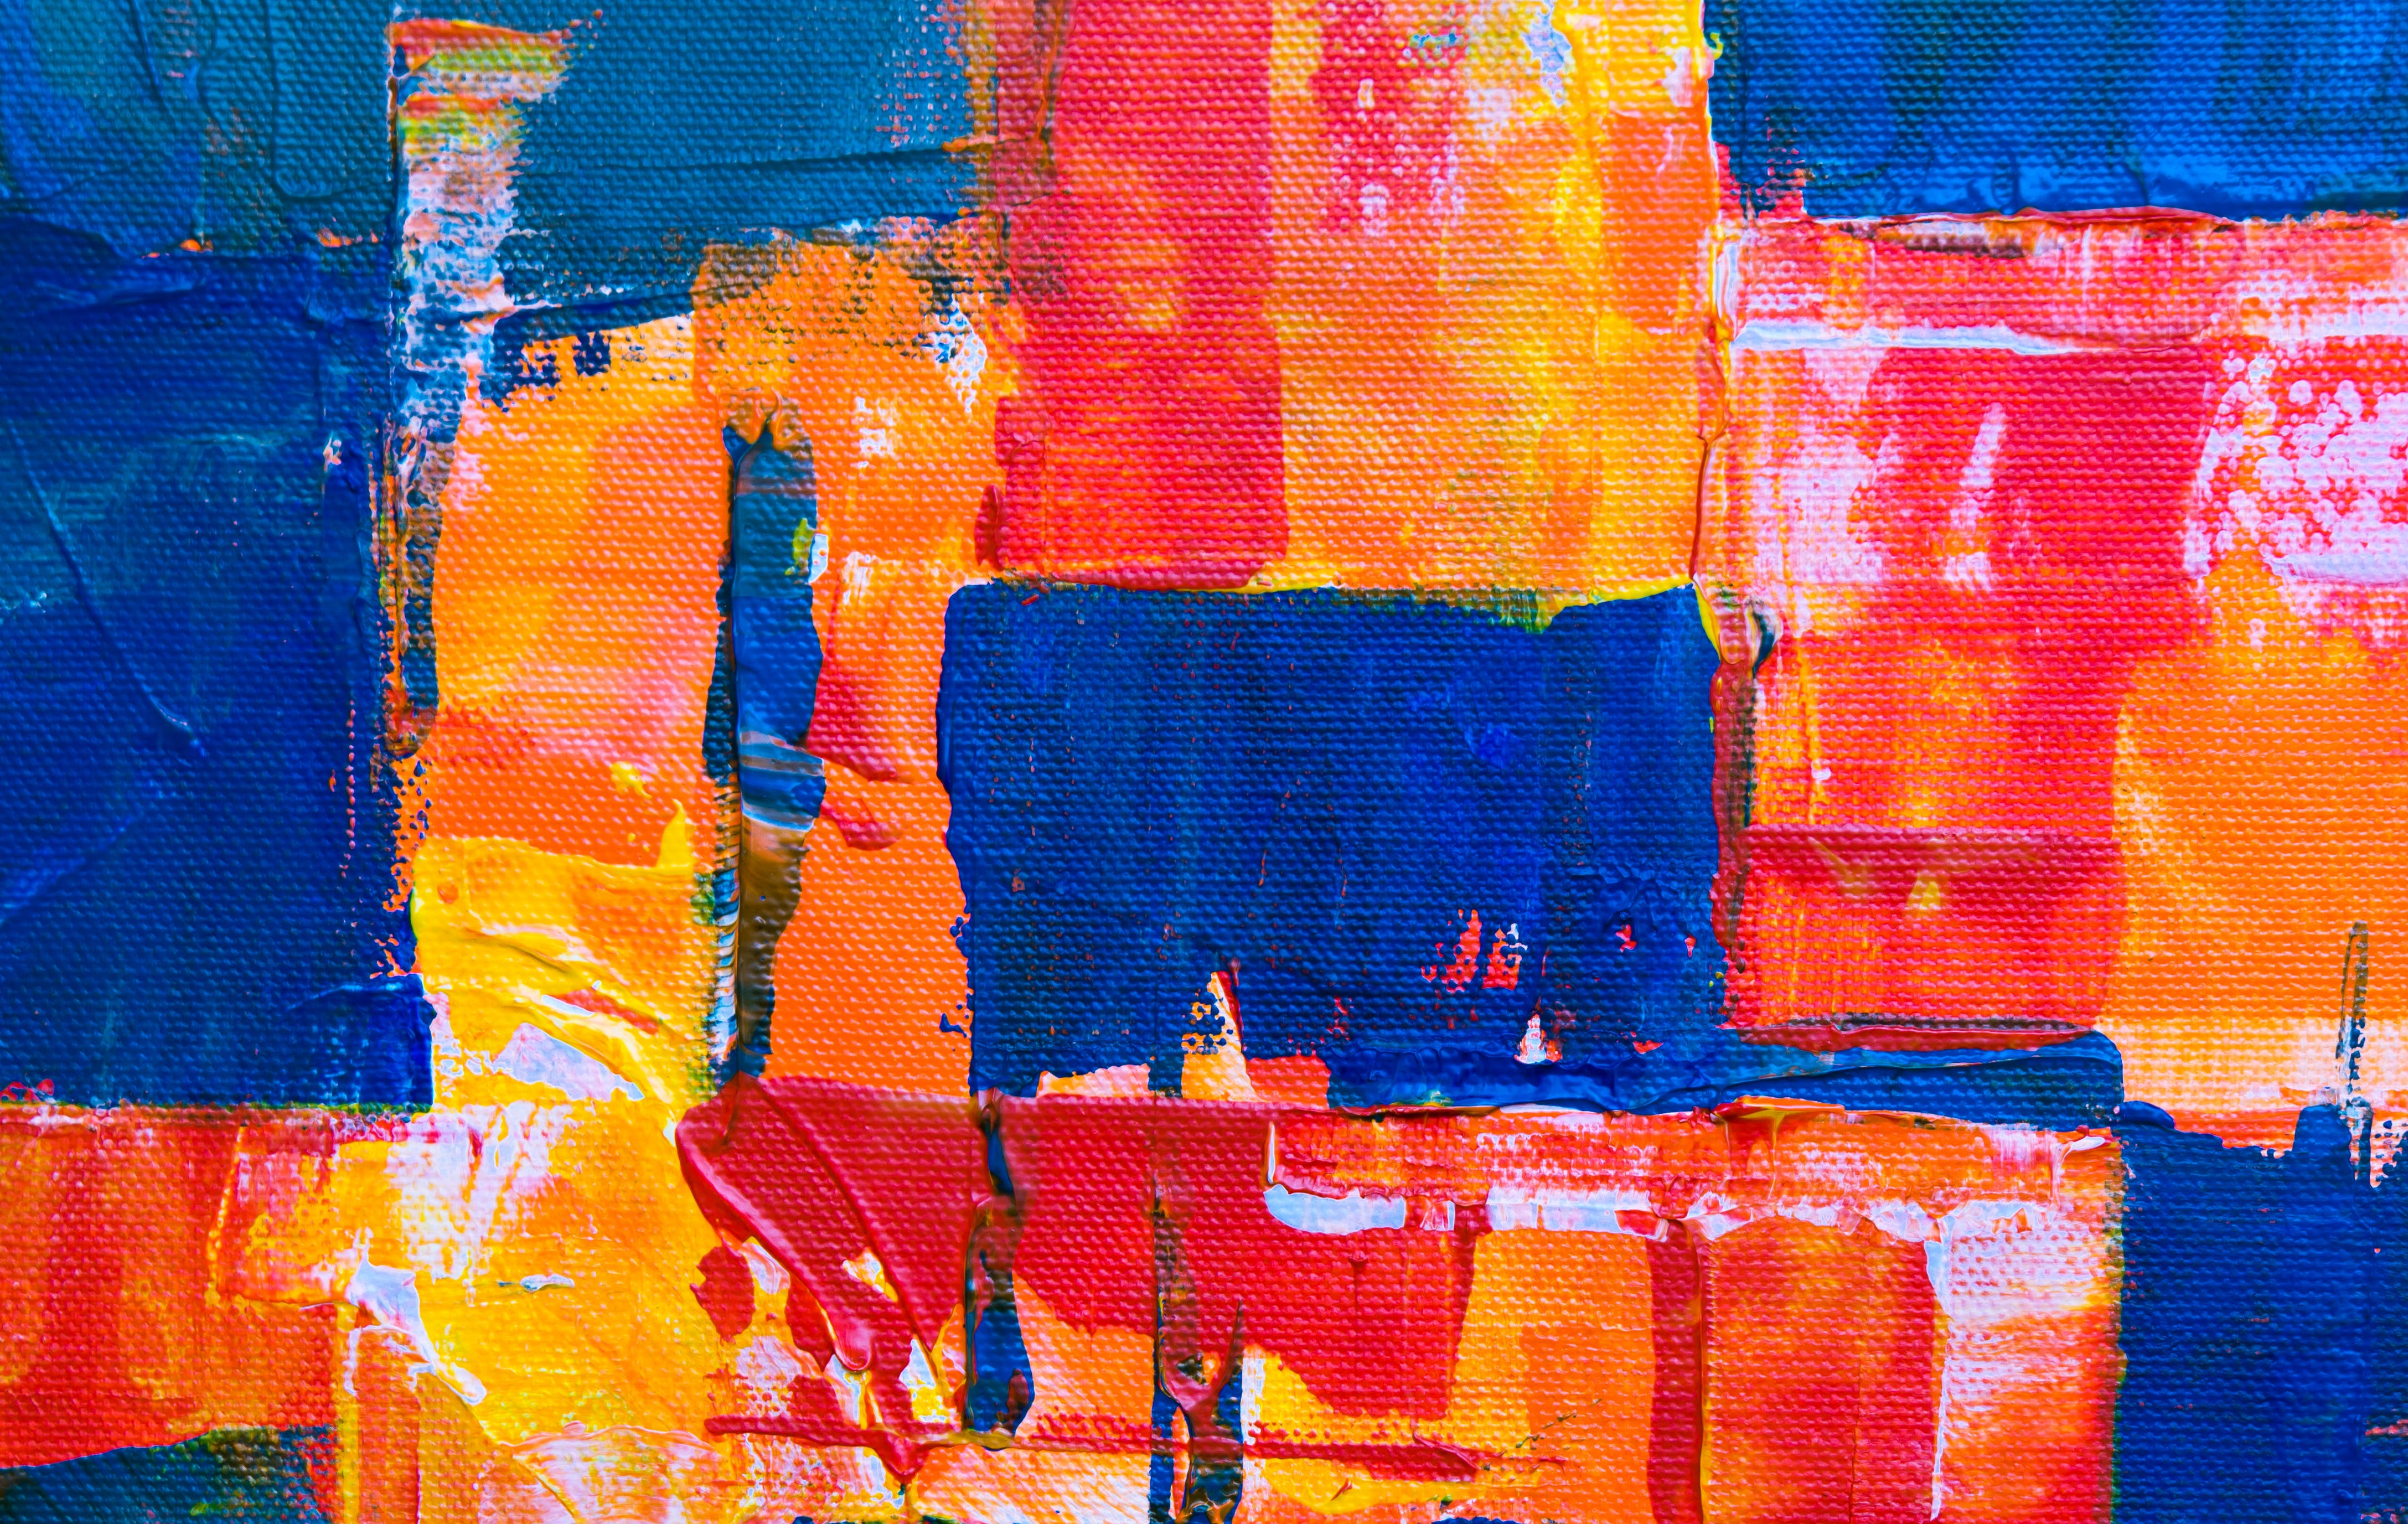 Photo of Abstract Painting with Vibrant Colors